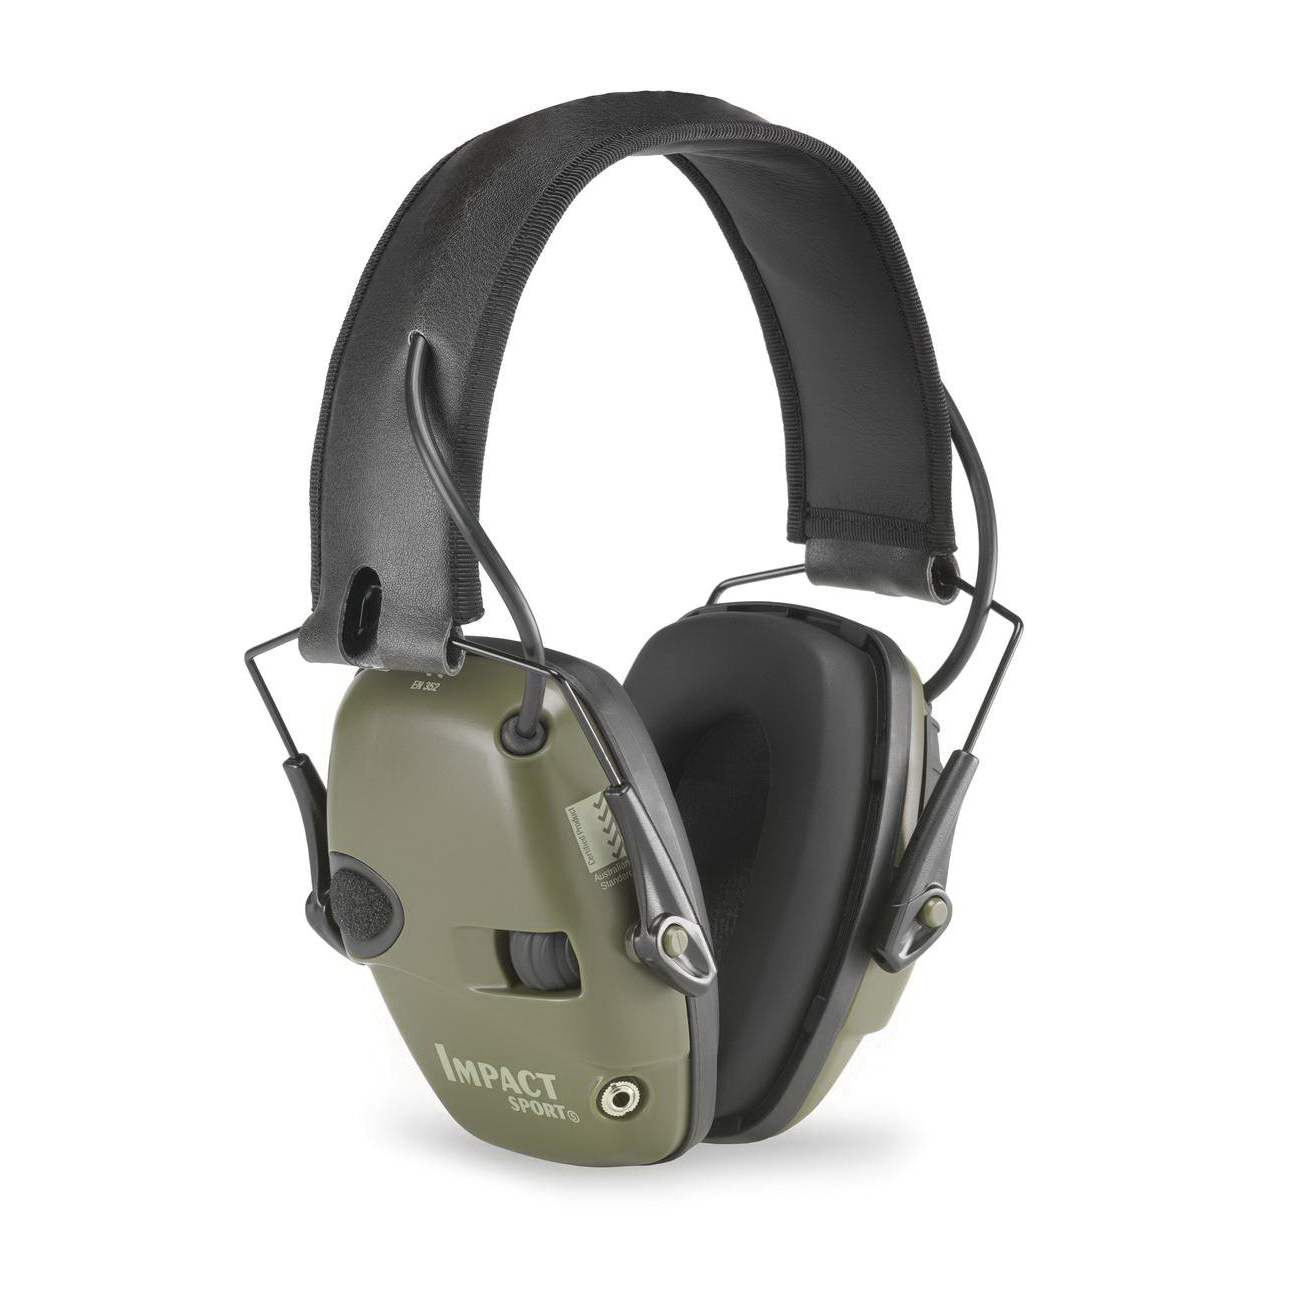 Howard Leight by Honeywell R-01526 Impact® Sport Earmuffs, 22 dB Noise Reduction, Green, Folding Band Position, ANSI S3.19-1974